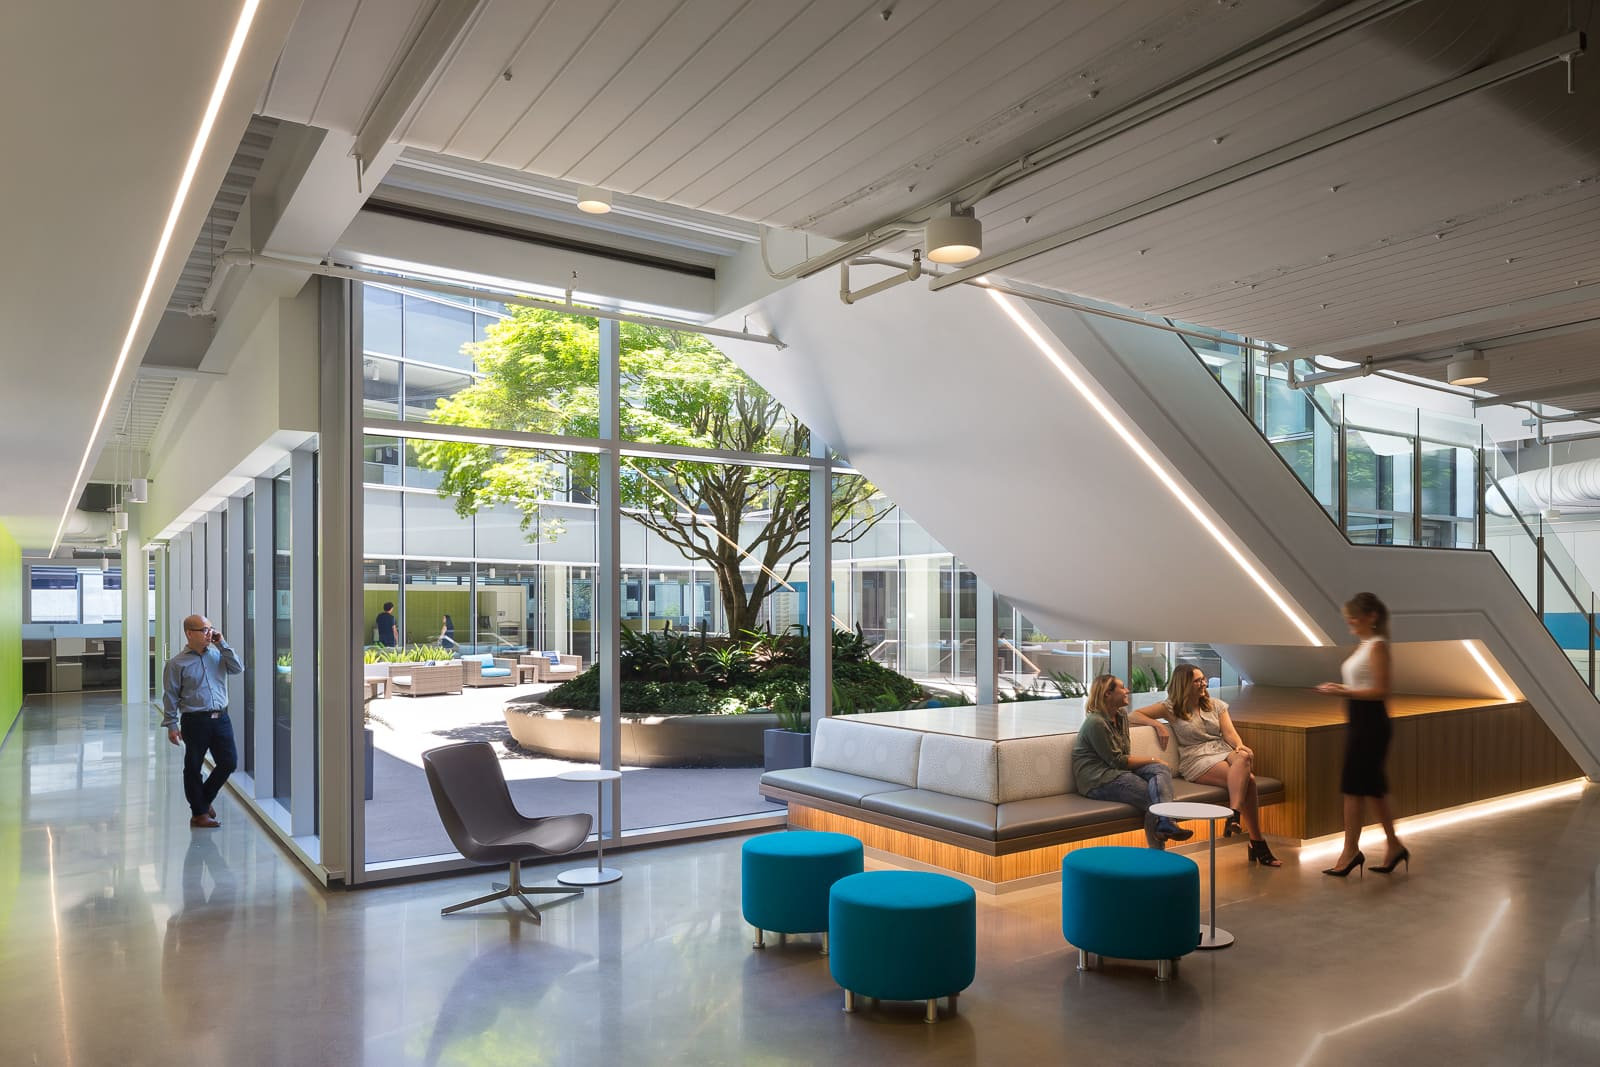 Cool Office Spaces Ideas That Make You Look Forward To Work